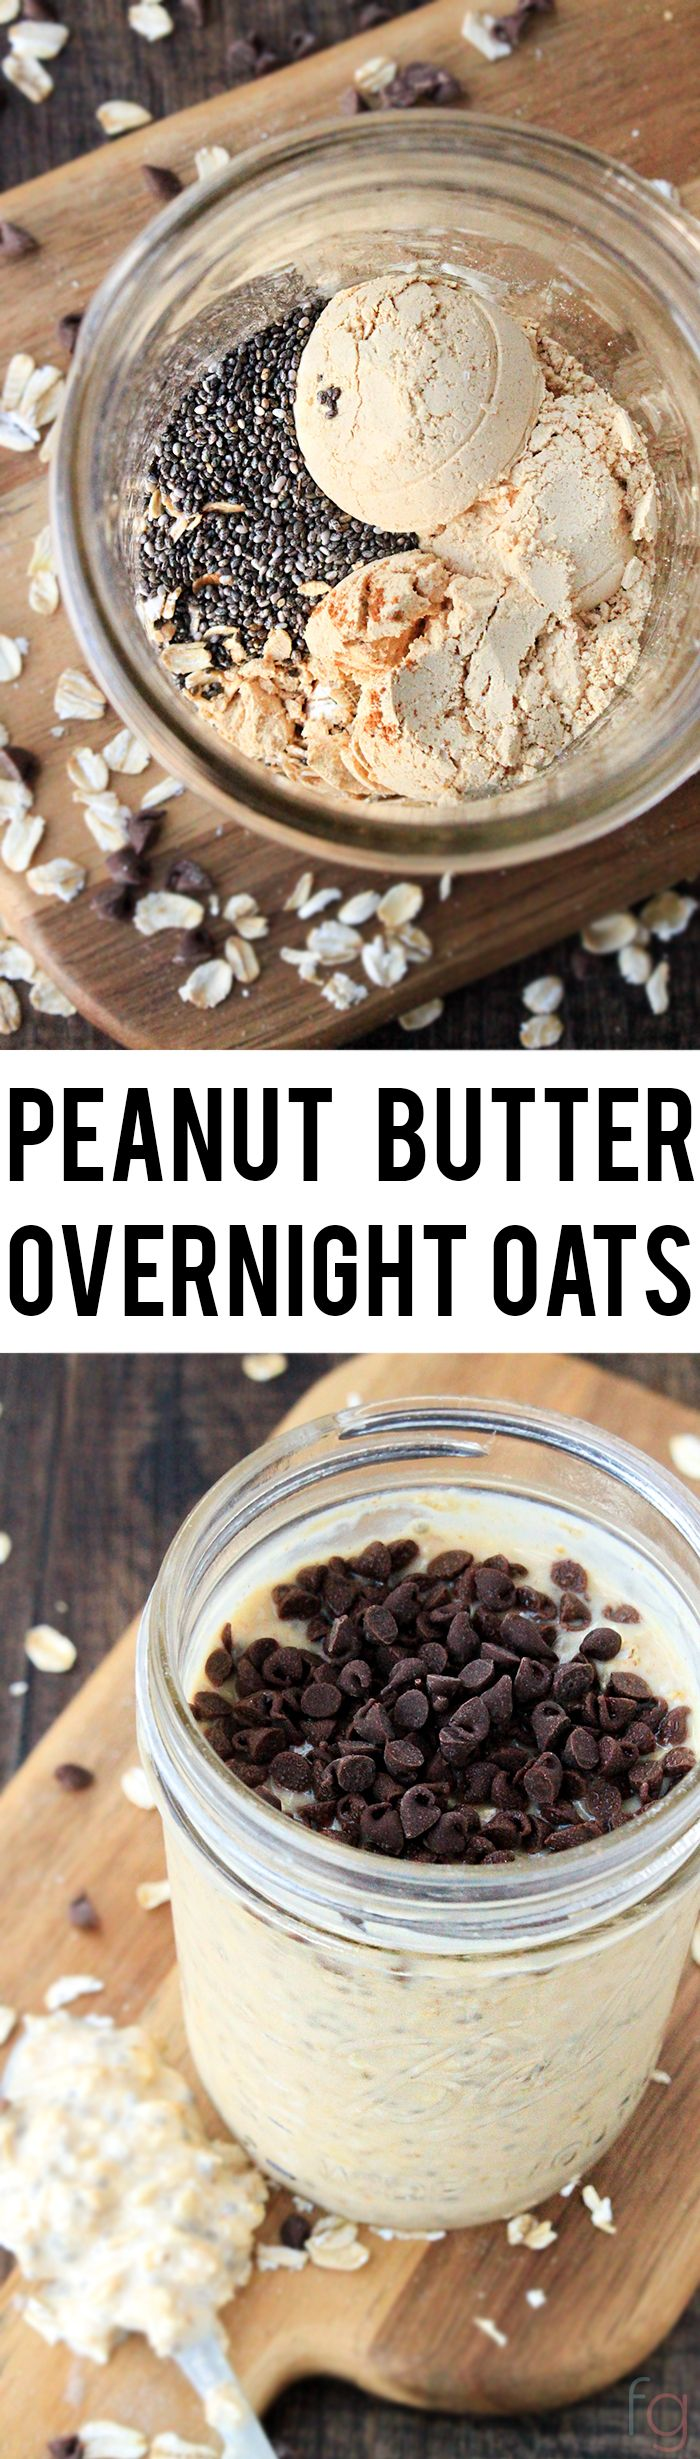 This Peanut Butter Overnight Oats Recipe is such an easy breakfast and takes less than five minutes to put together! #StartWithJifPowder #ad